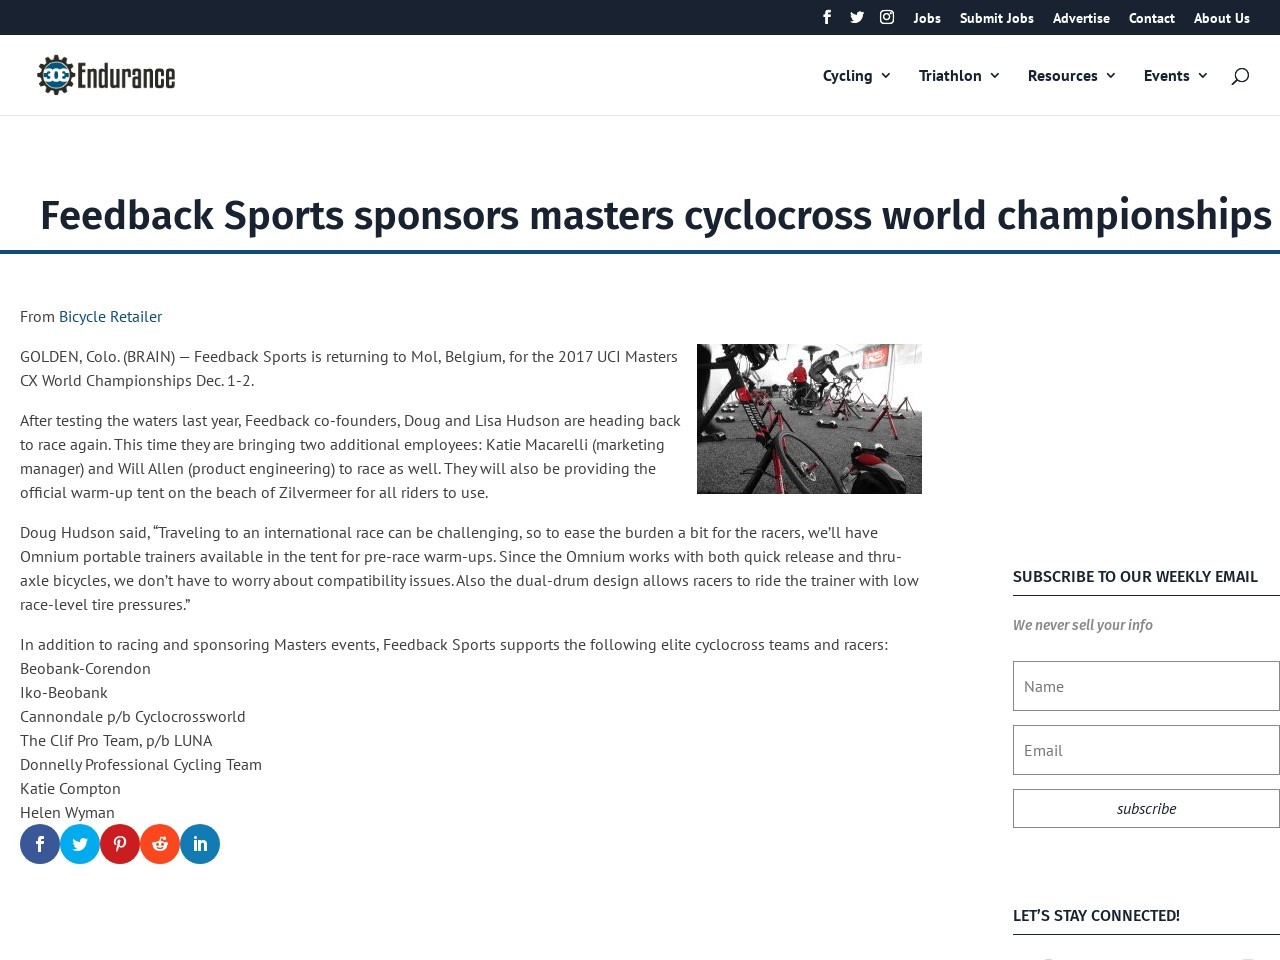 Feedback Sports sponsors masters cyclocross world championships